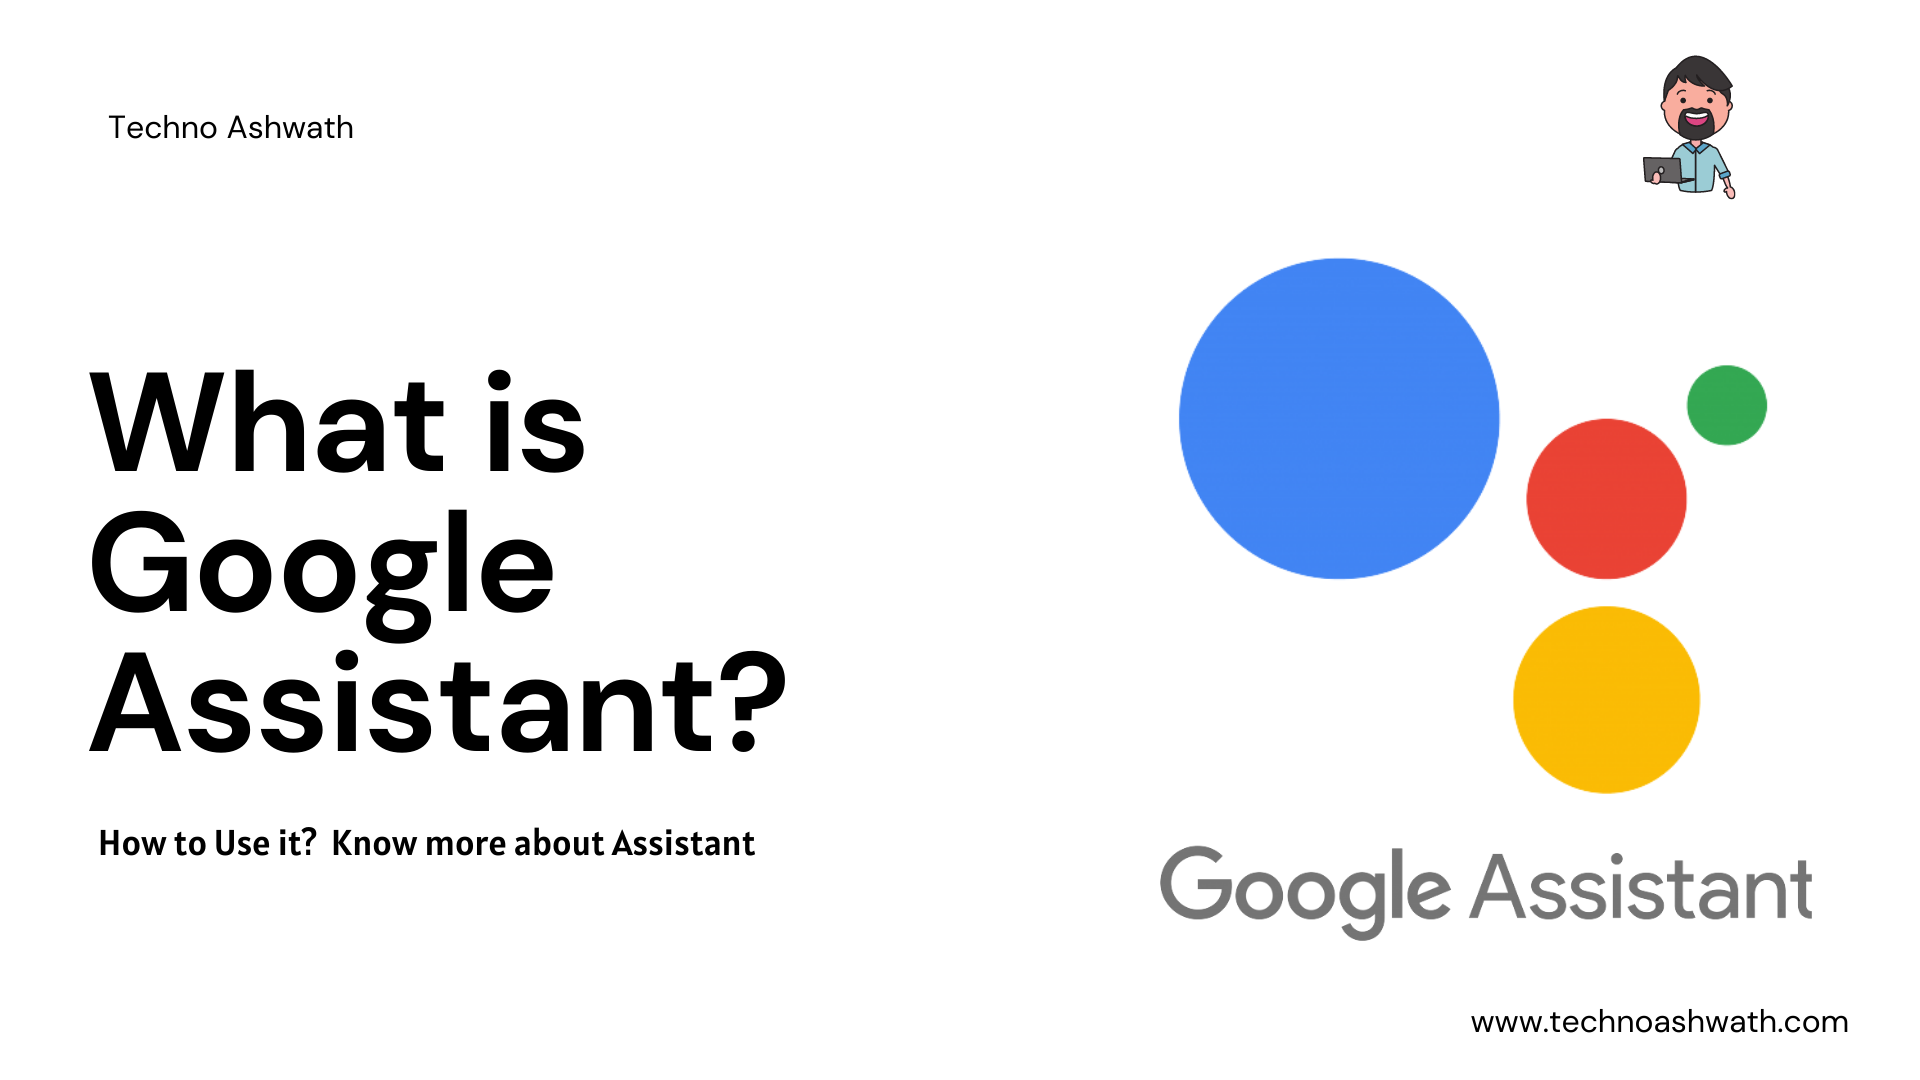 What is Google Assistant and How to use it? - Techno Ashwath